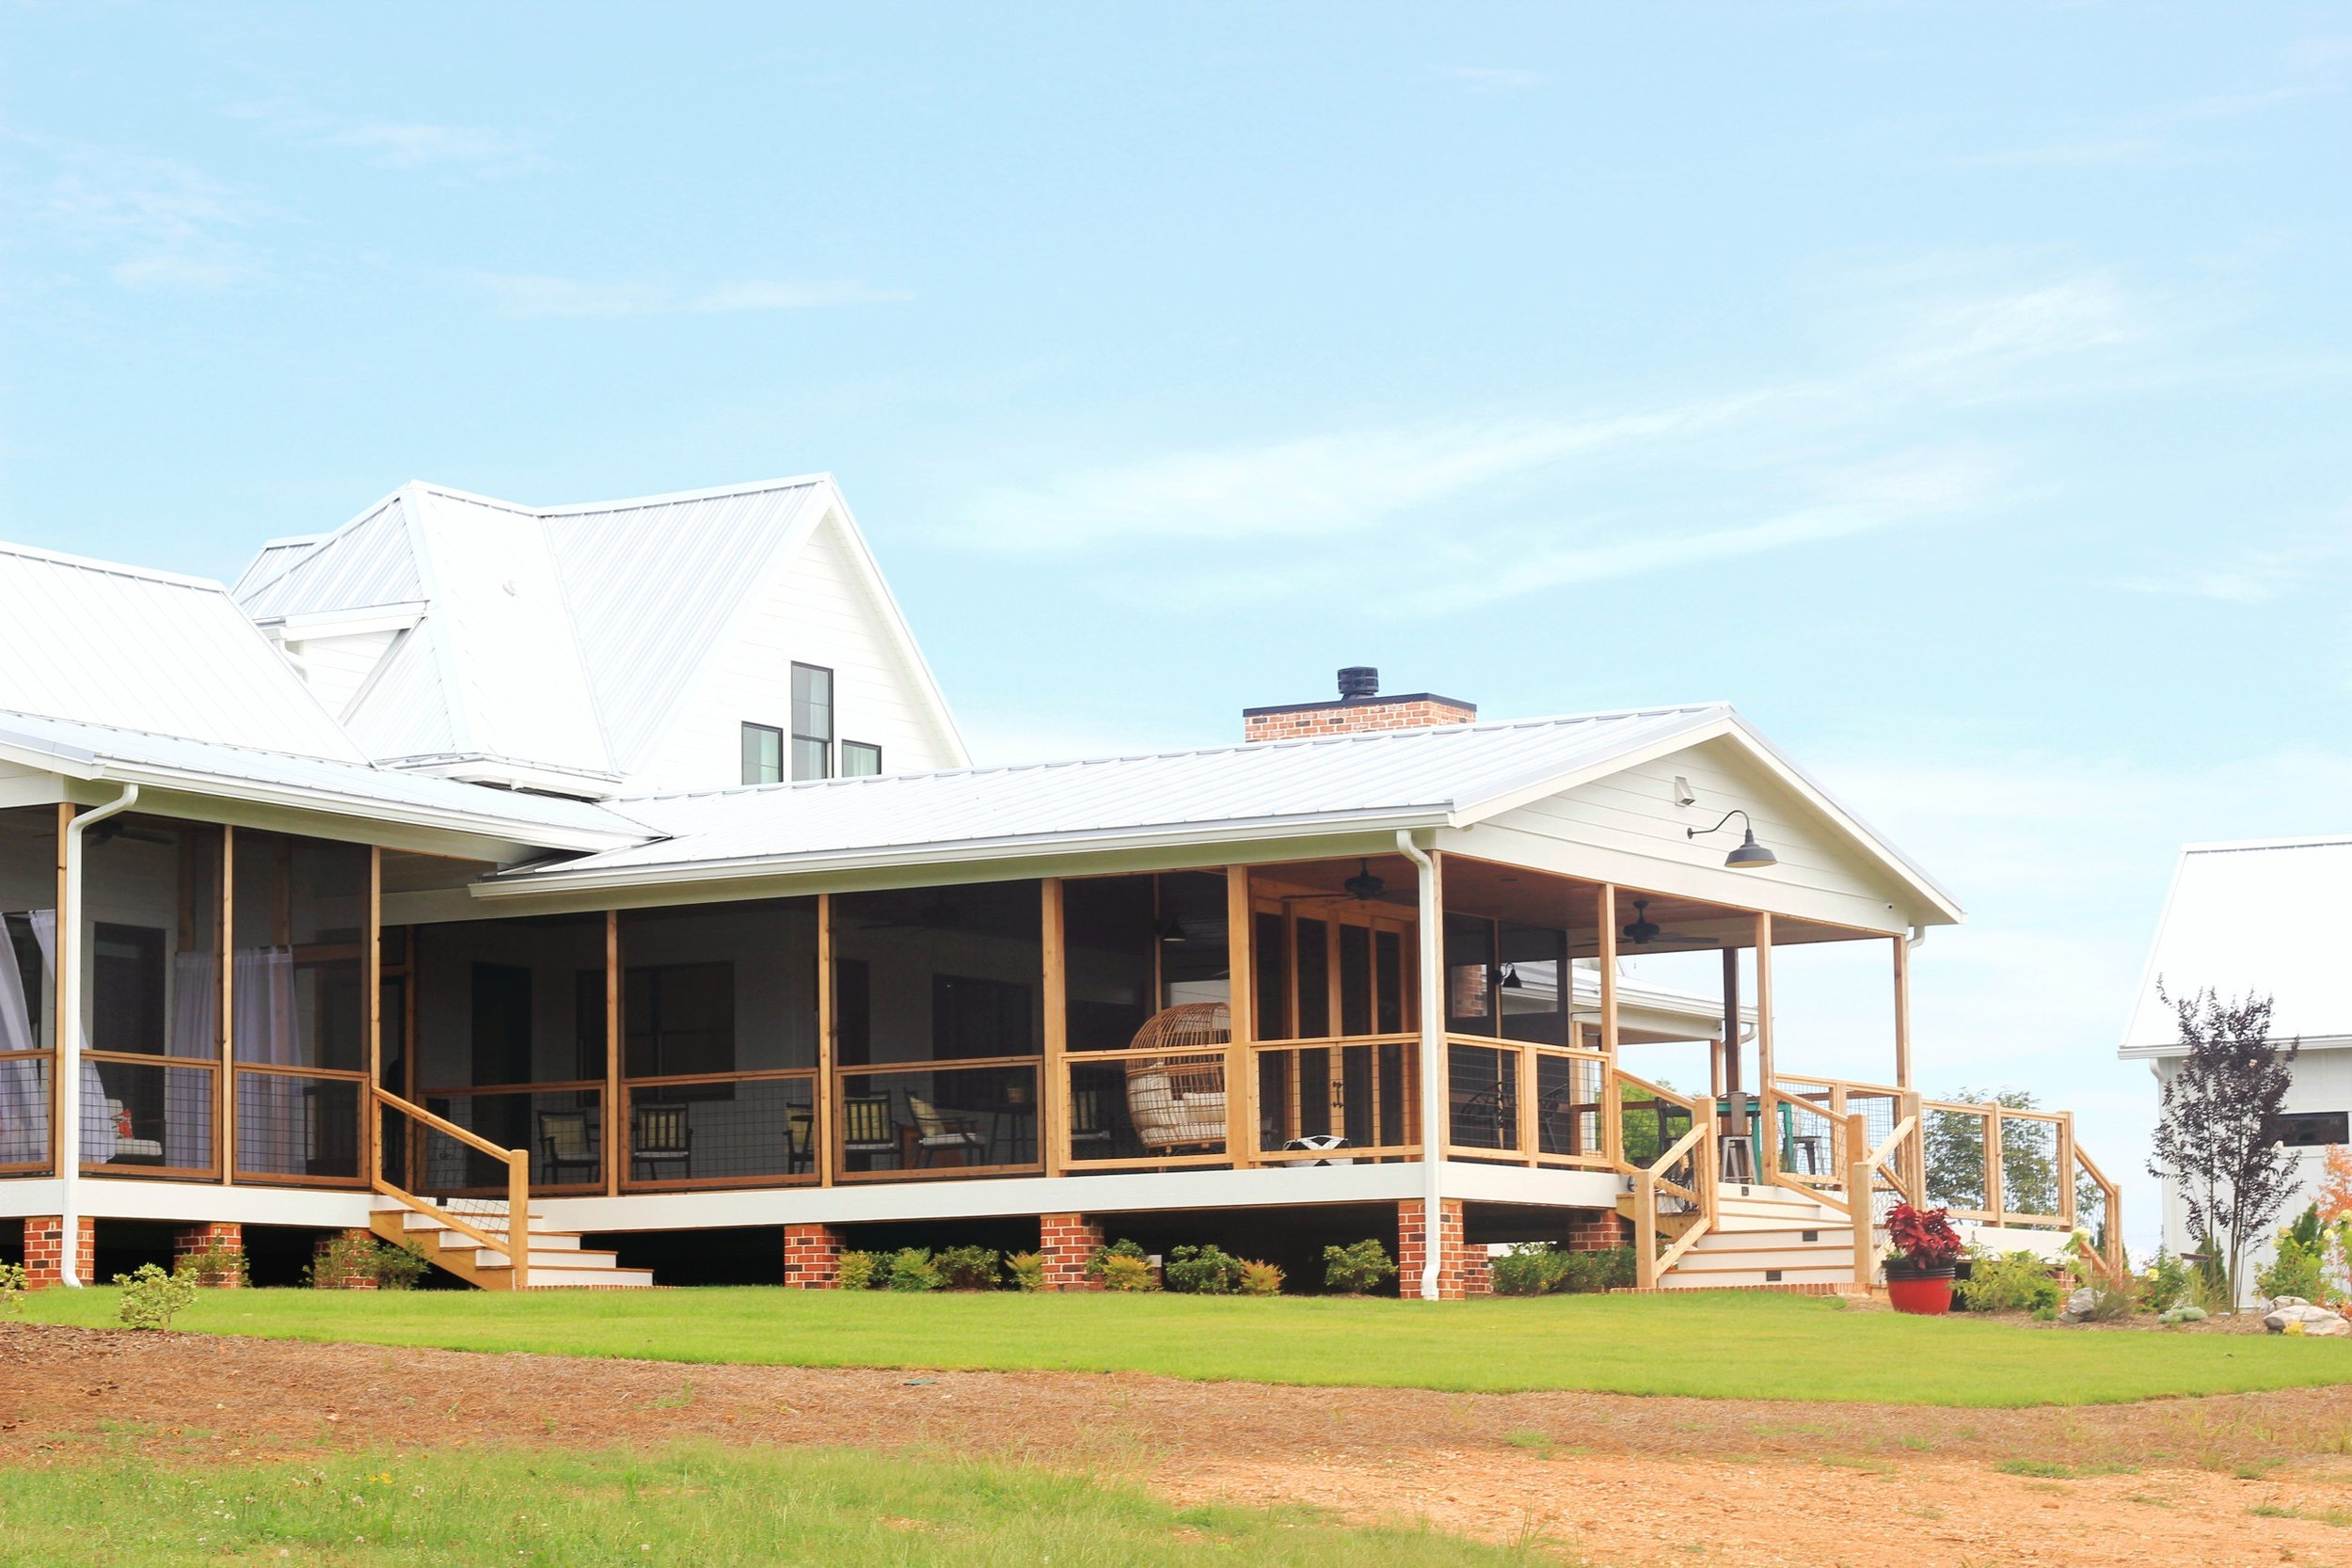 Our back porch has beautiful views of the pastures and plenty of room for all your friends and family.